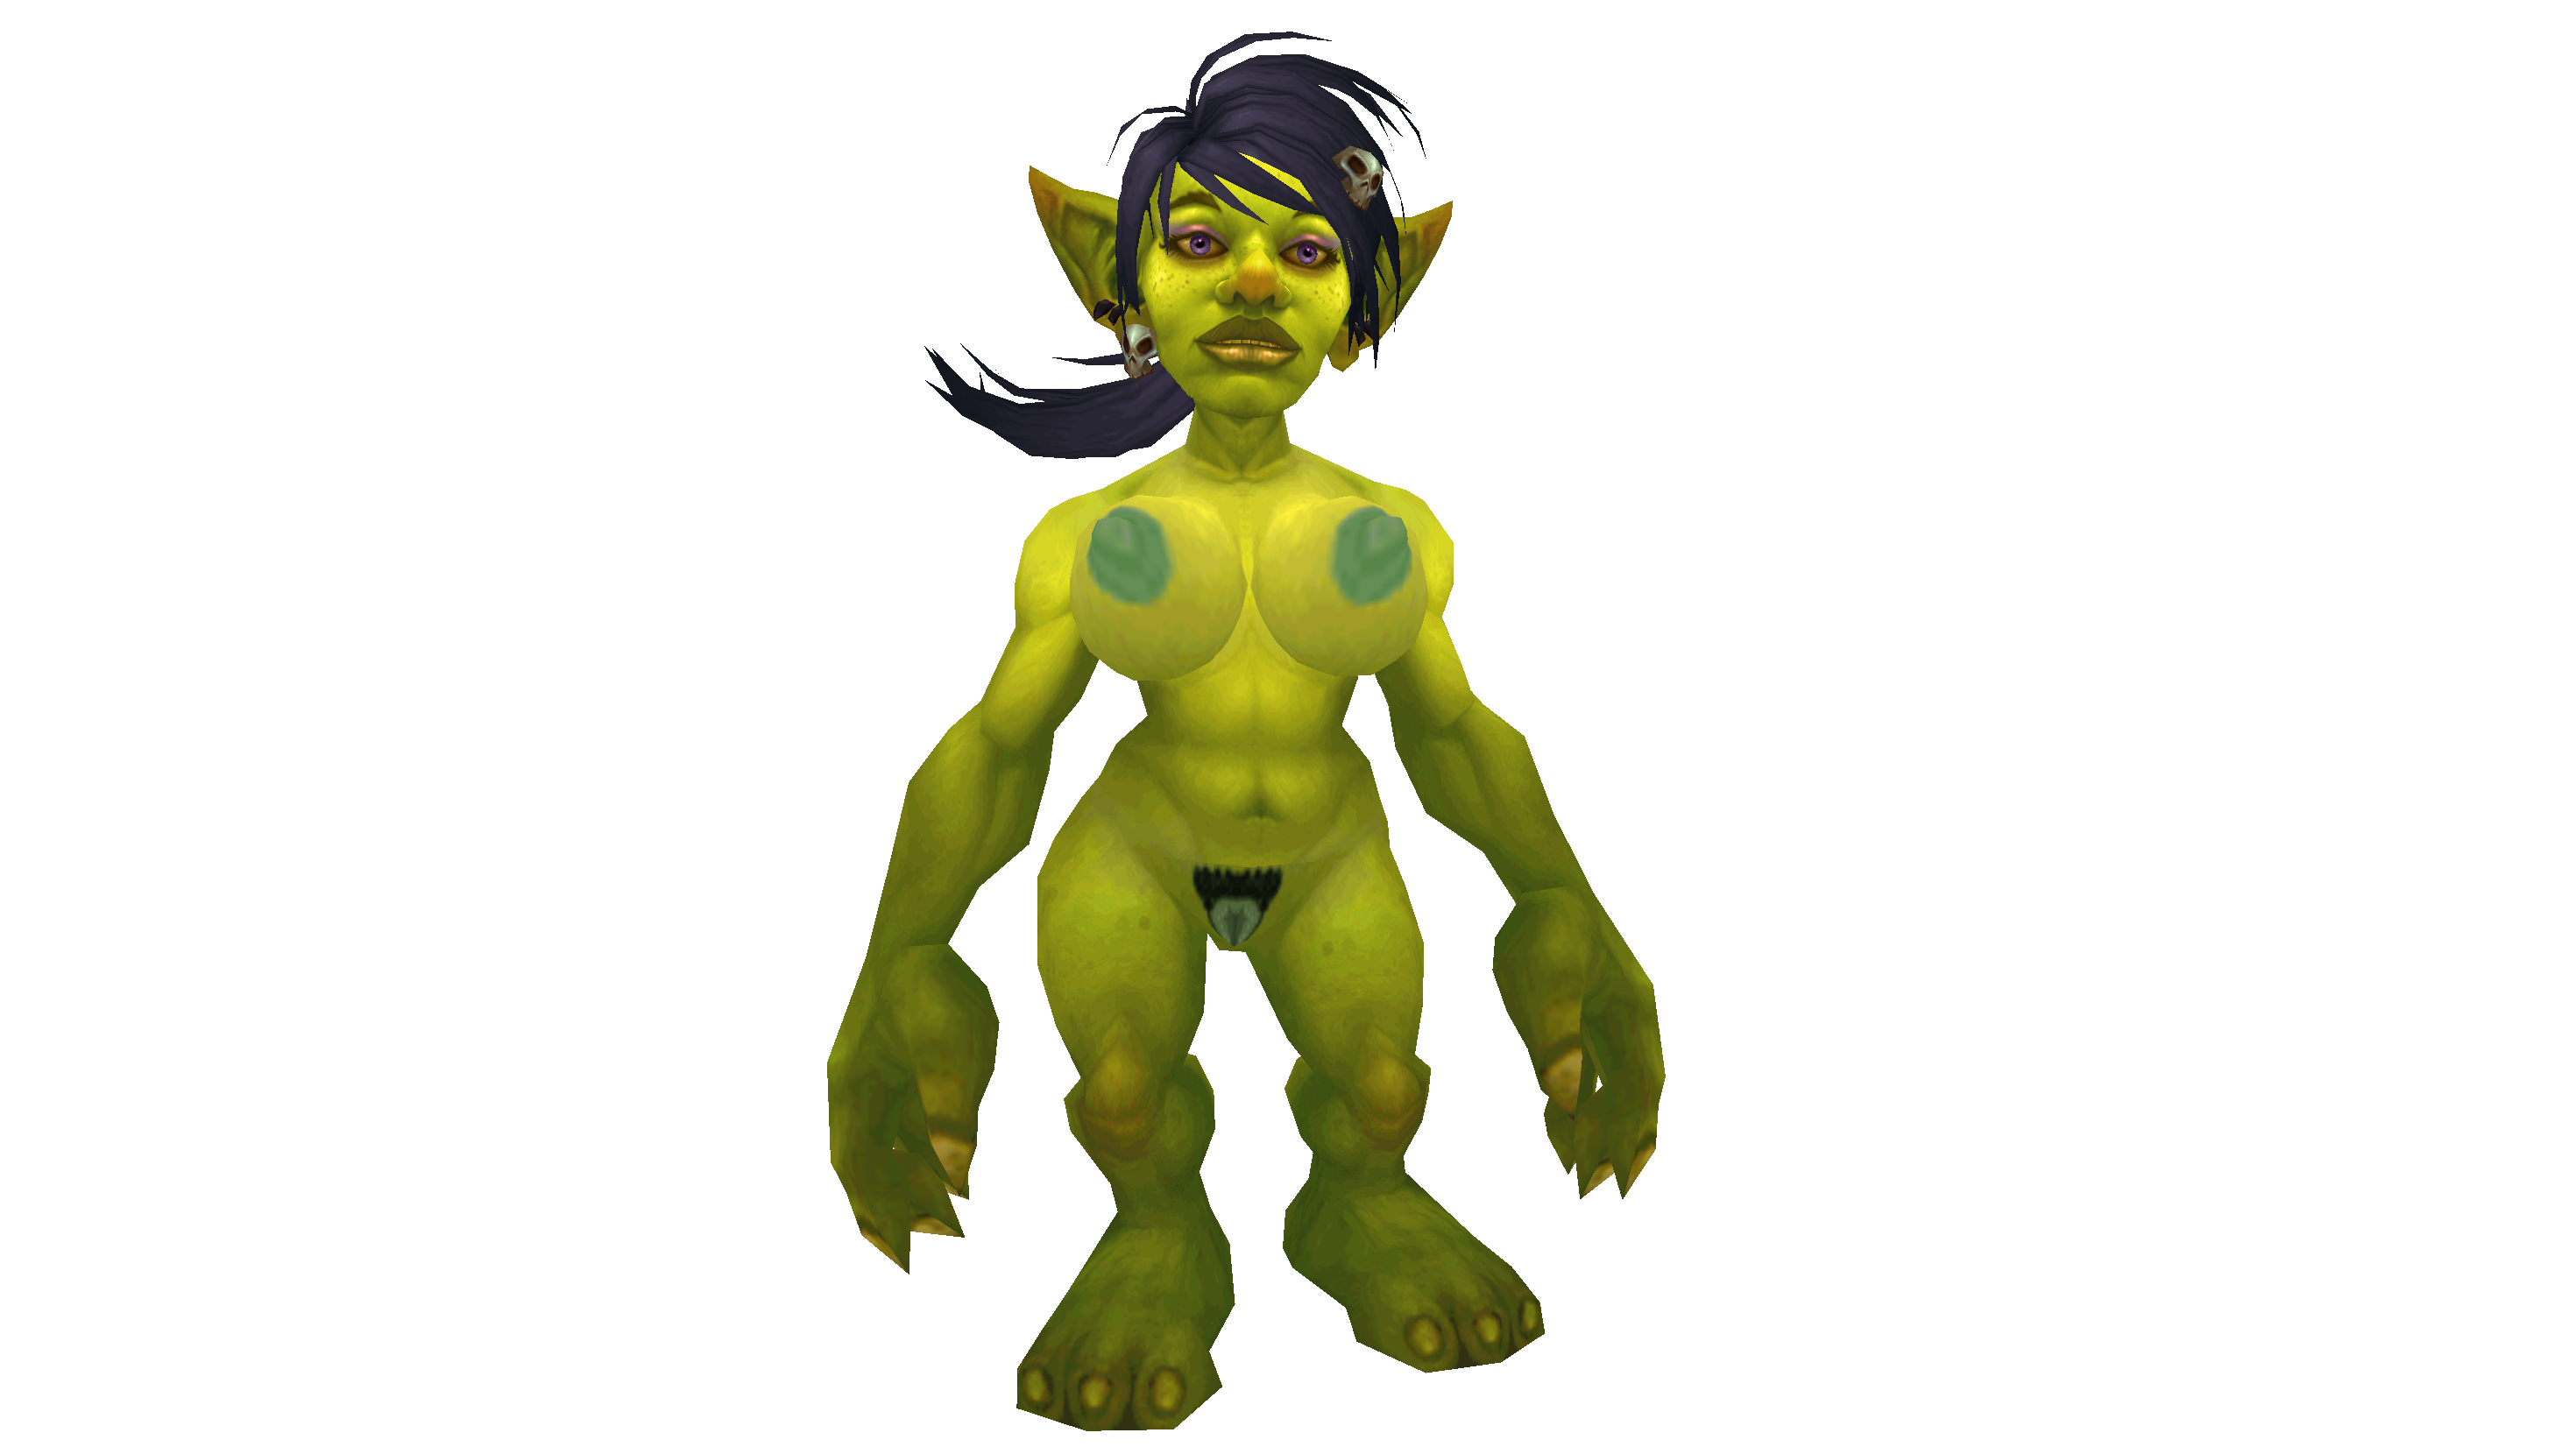 World of warcraft goblin nude mod hardcore galleries